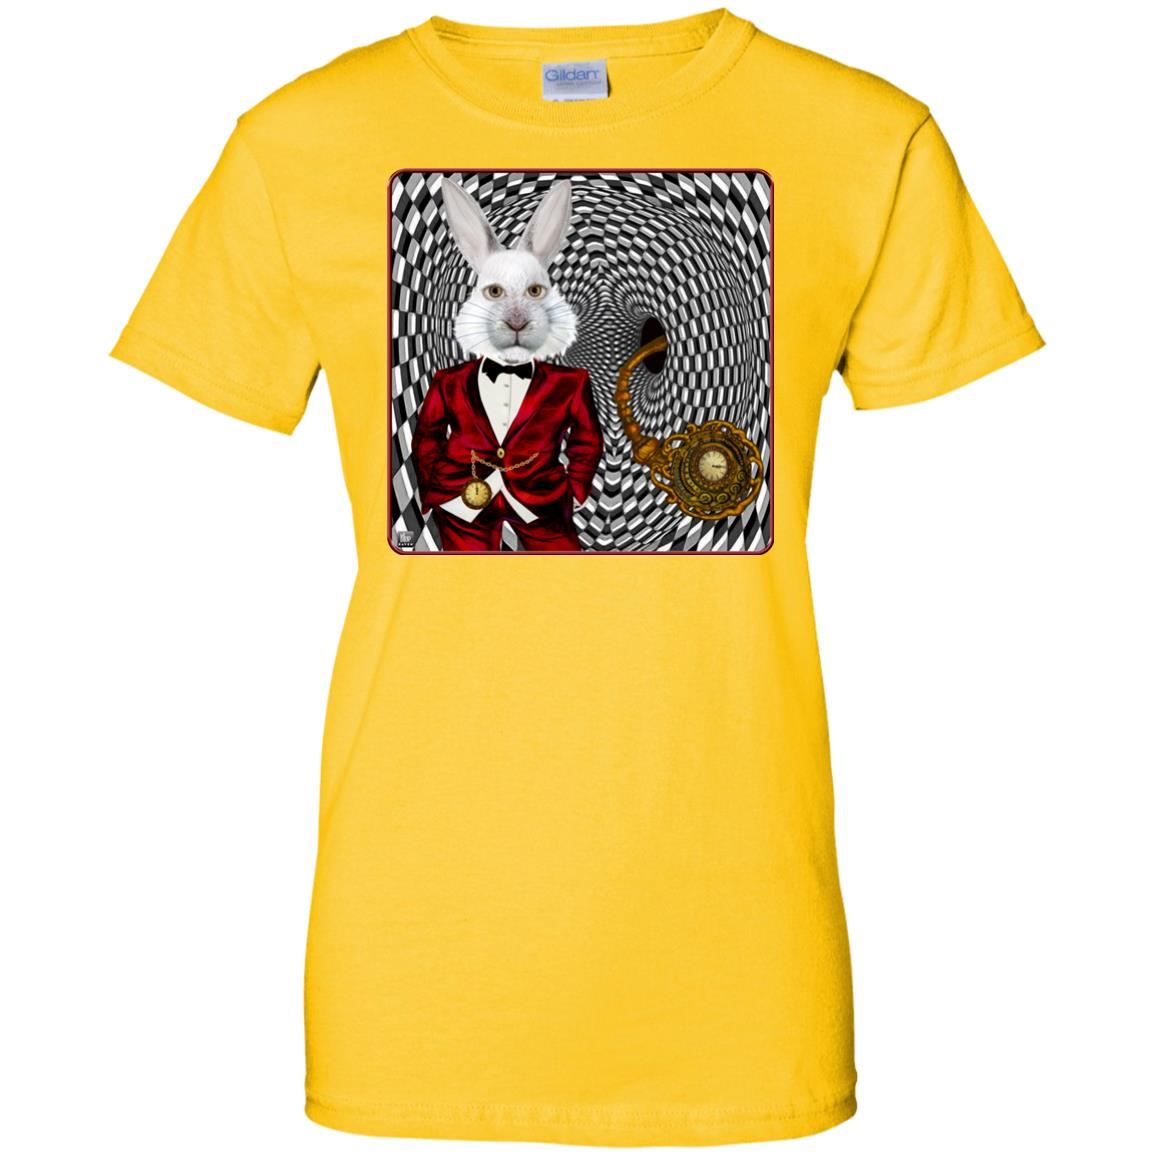 portrait of the white rabbit - Women's Relaxed Fit T-Shirt